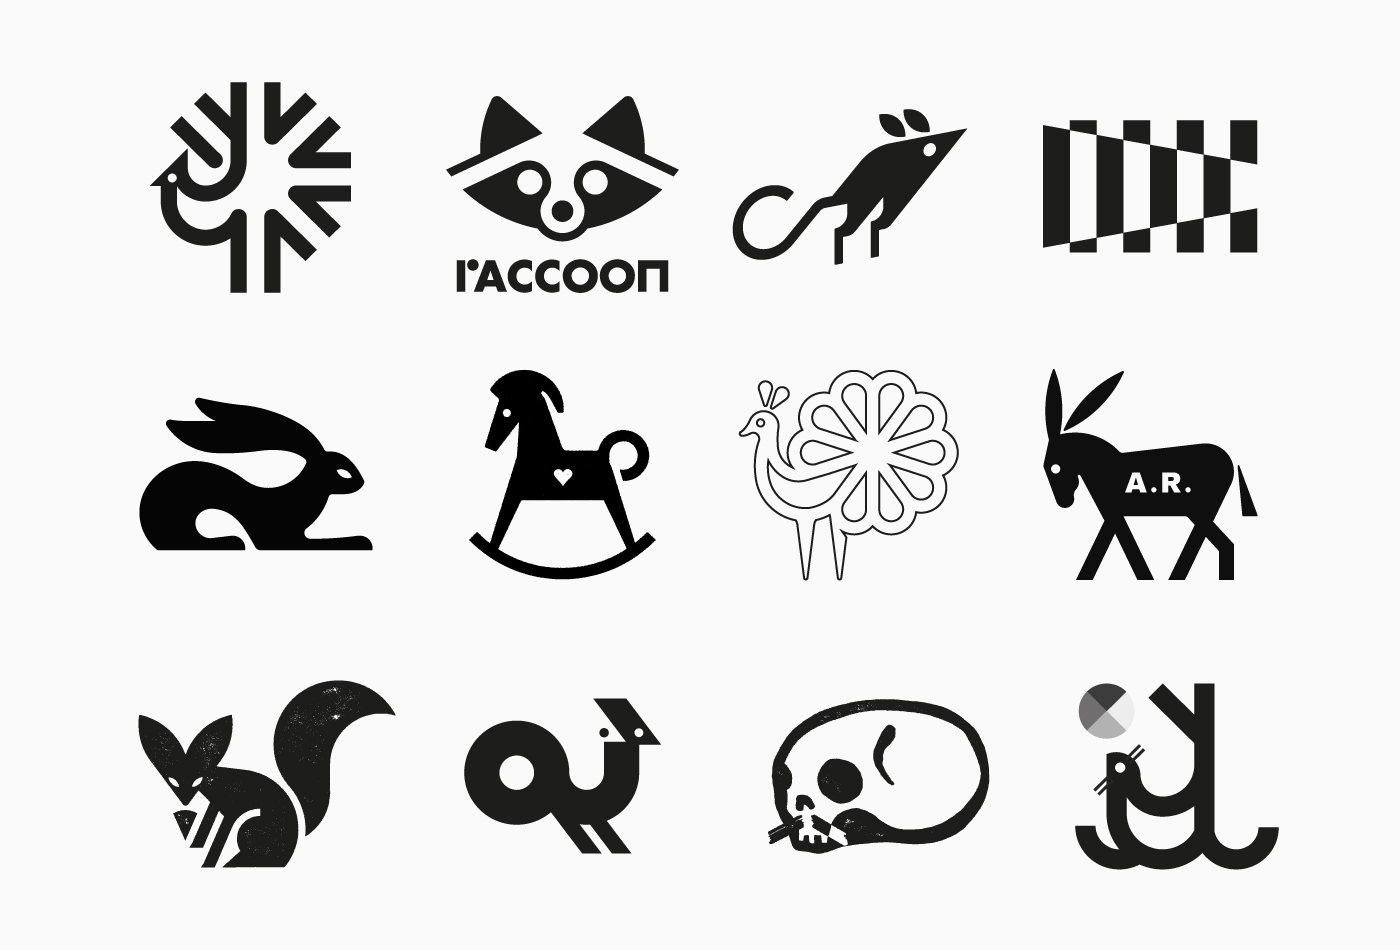 mark-logo-logos-logotype-brand-branding-pittogramma-vacaliebres-marks-pictograms-signs-icon-icons-symbols-symbol-logotype